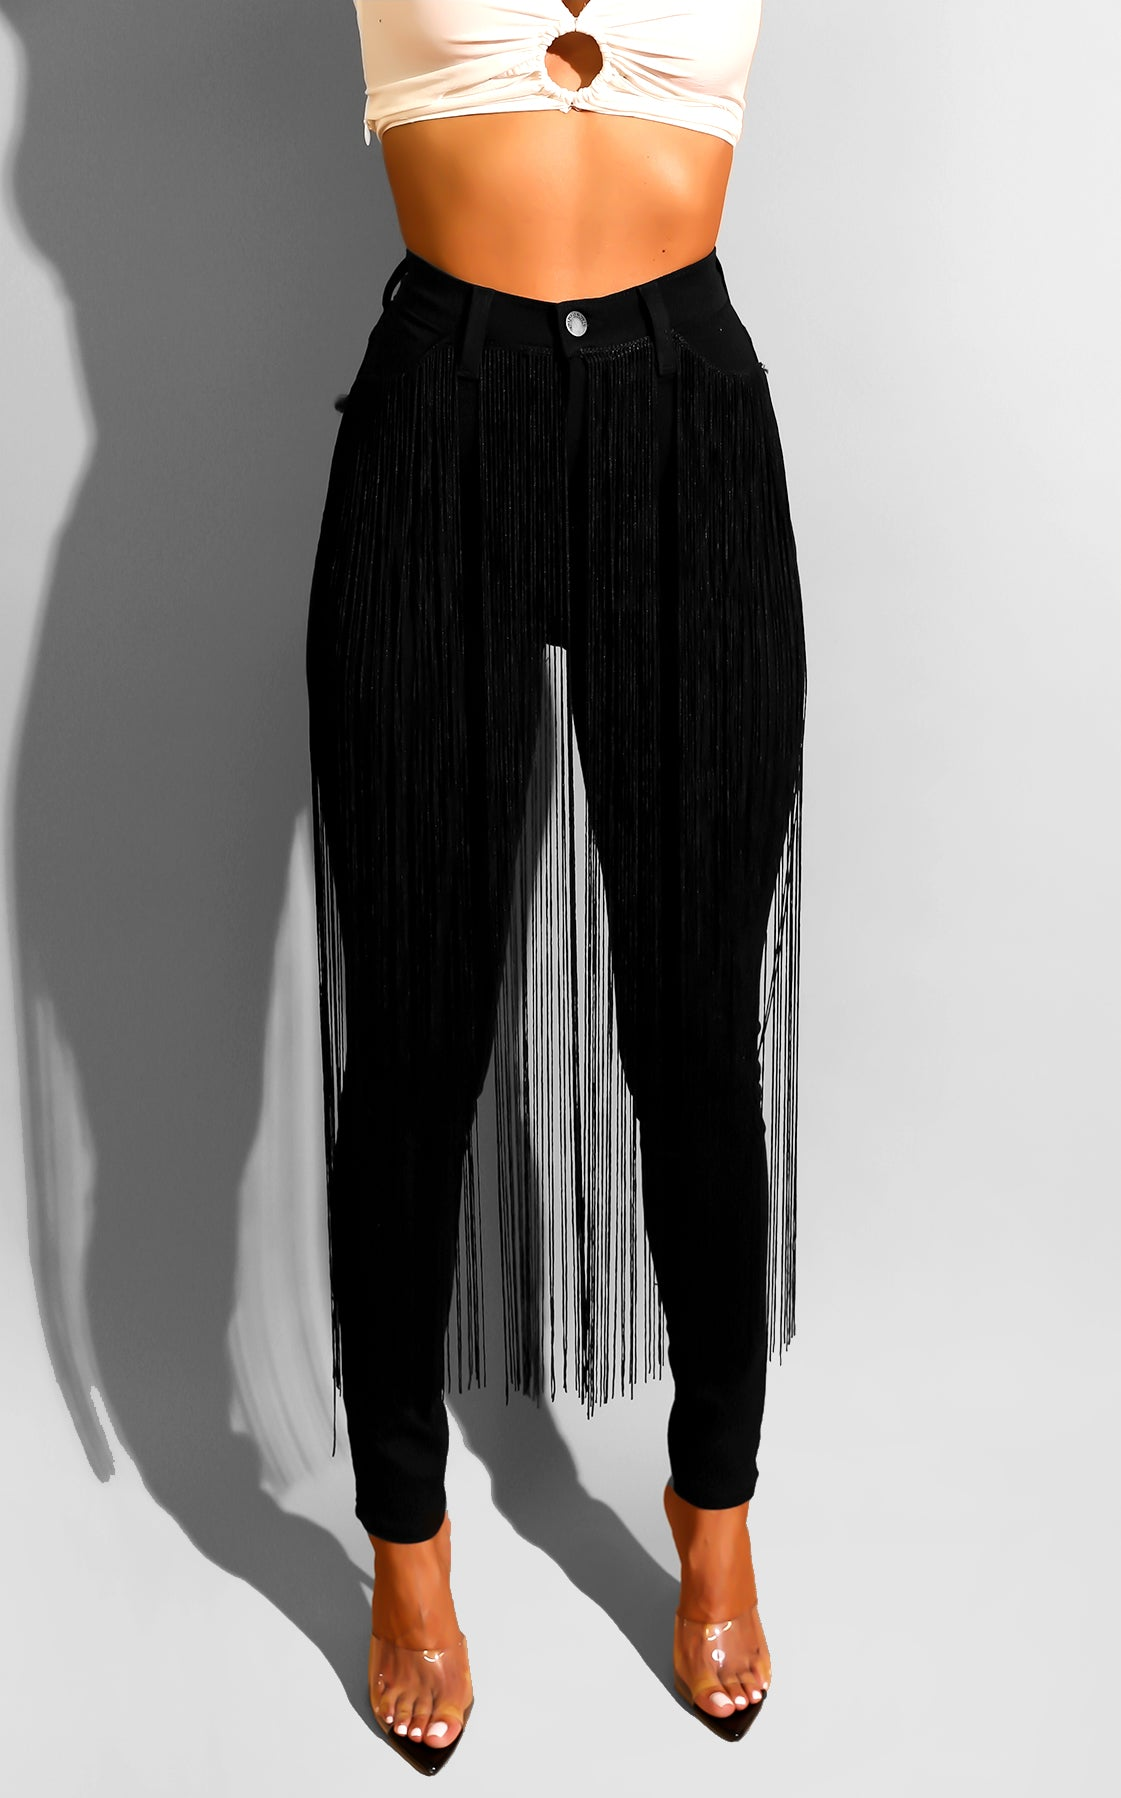 Fringe Doll Denim Black